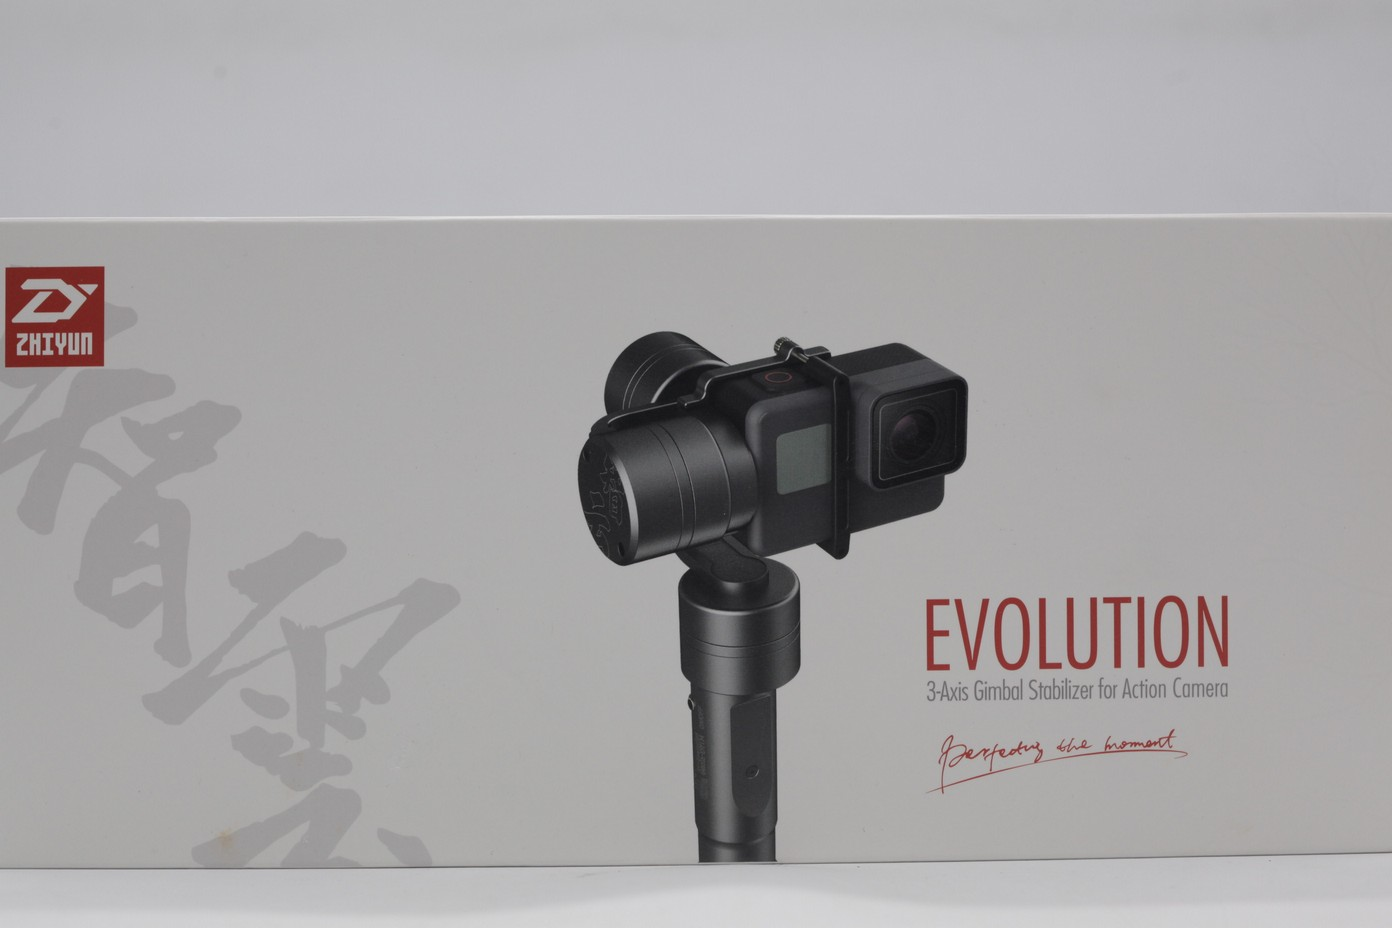 Used - Zhiyun Evolution 3-Axis Gimbal Stabilizer for Action Camera